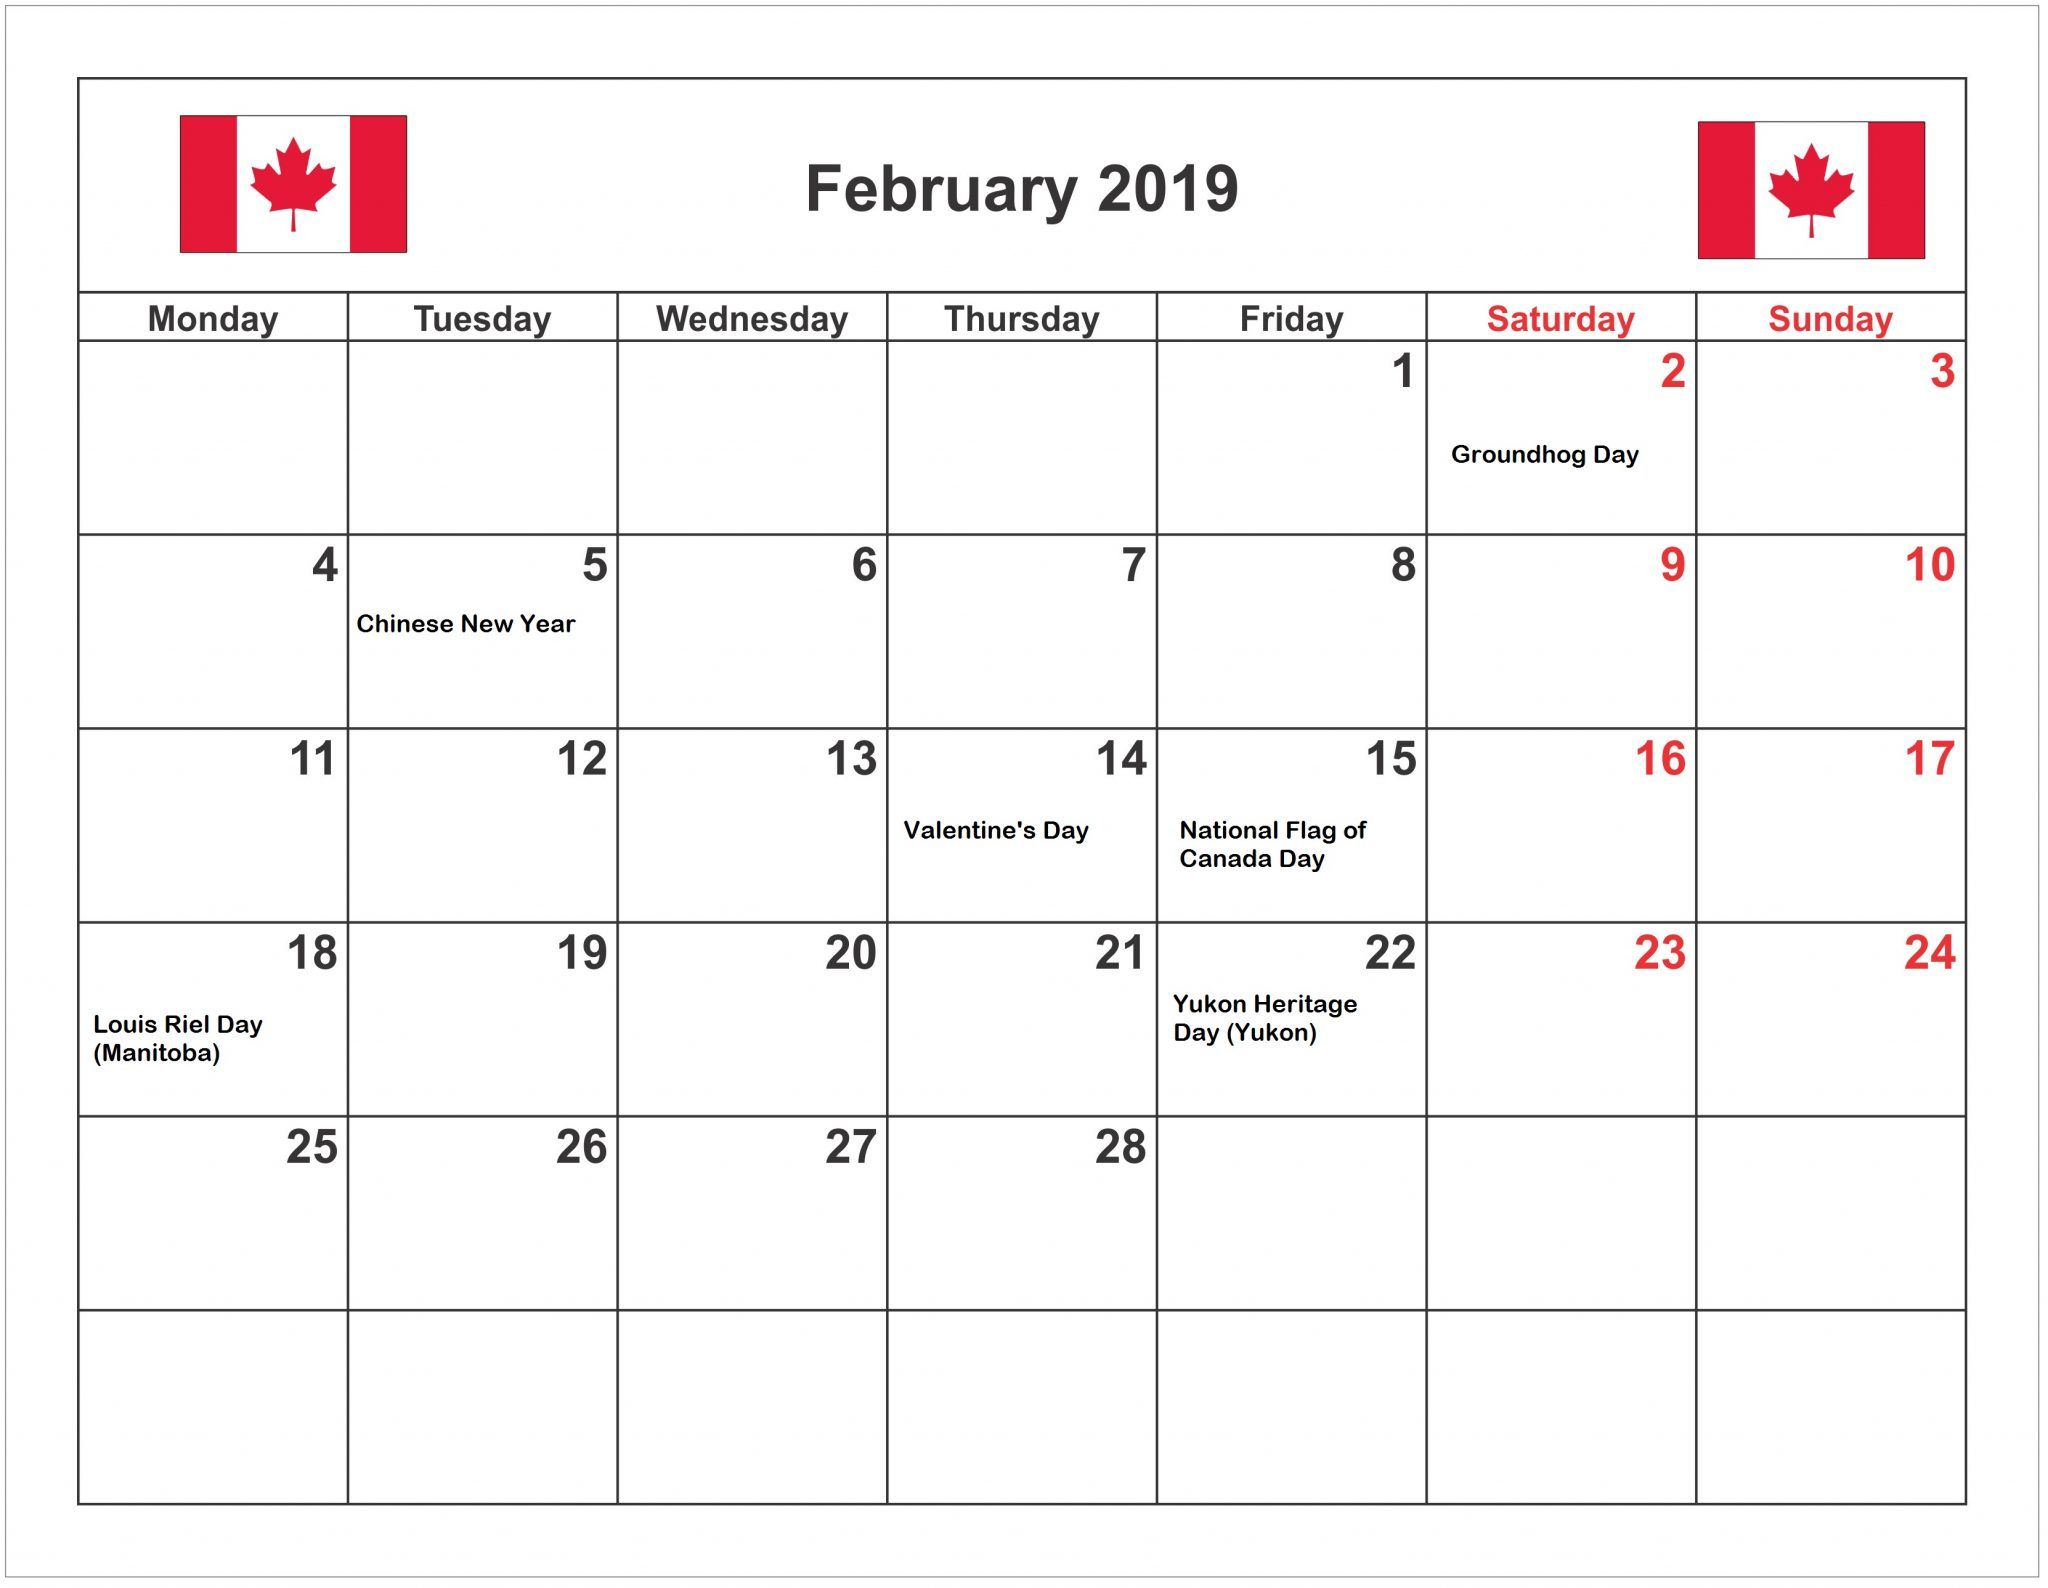 February Monthly Calendar With Holidays 2019 February 2019 Calendar Canada With Holidays | 150+ February 2019